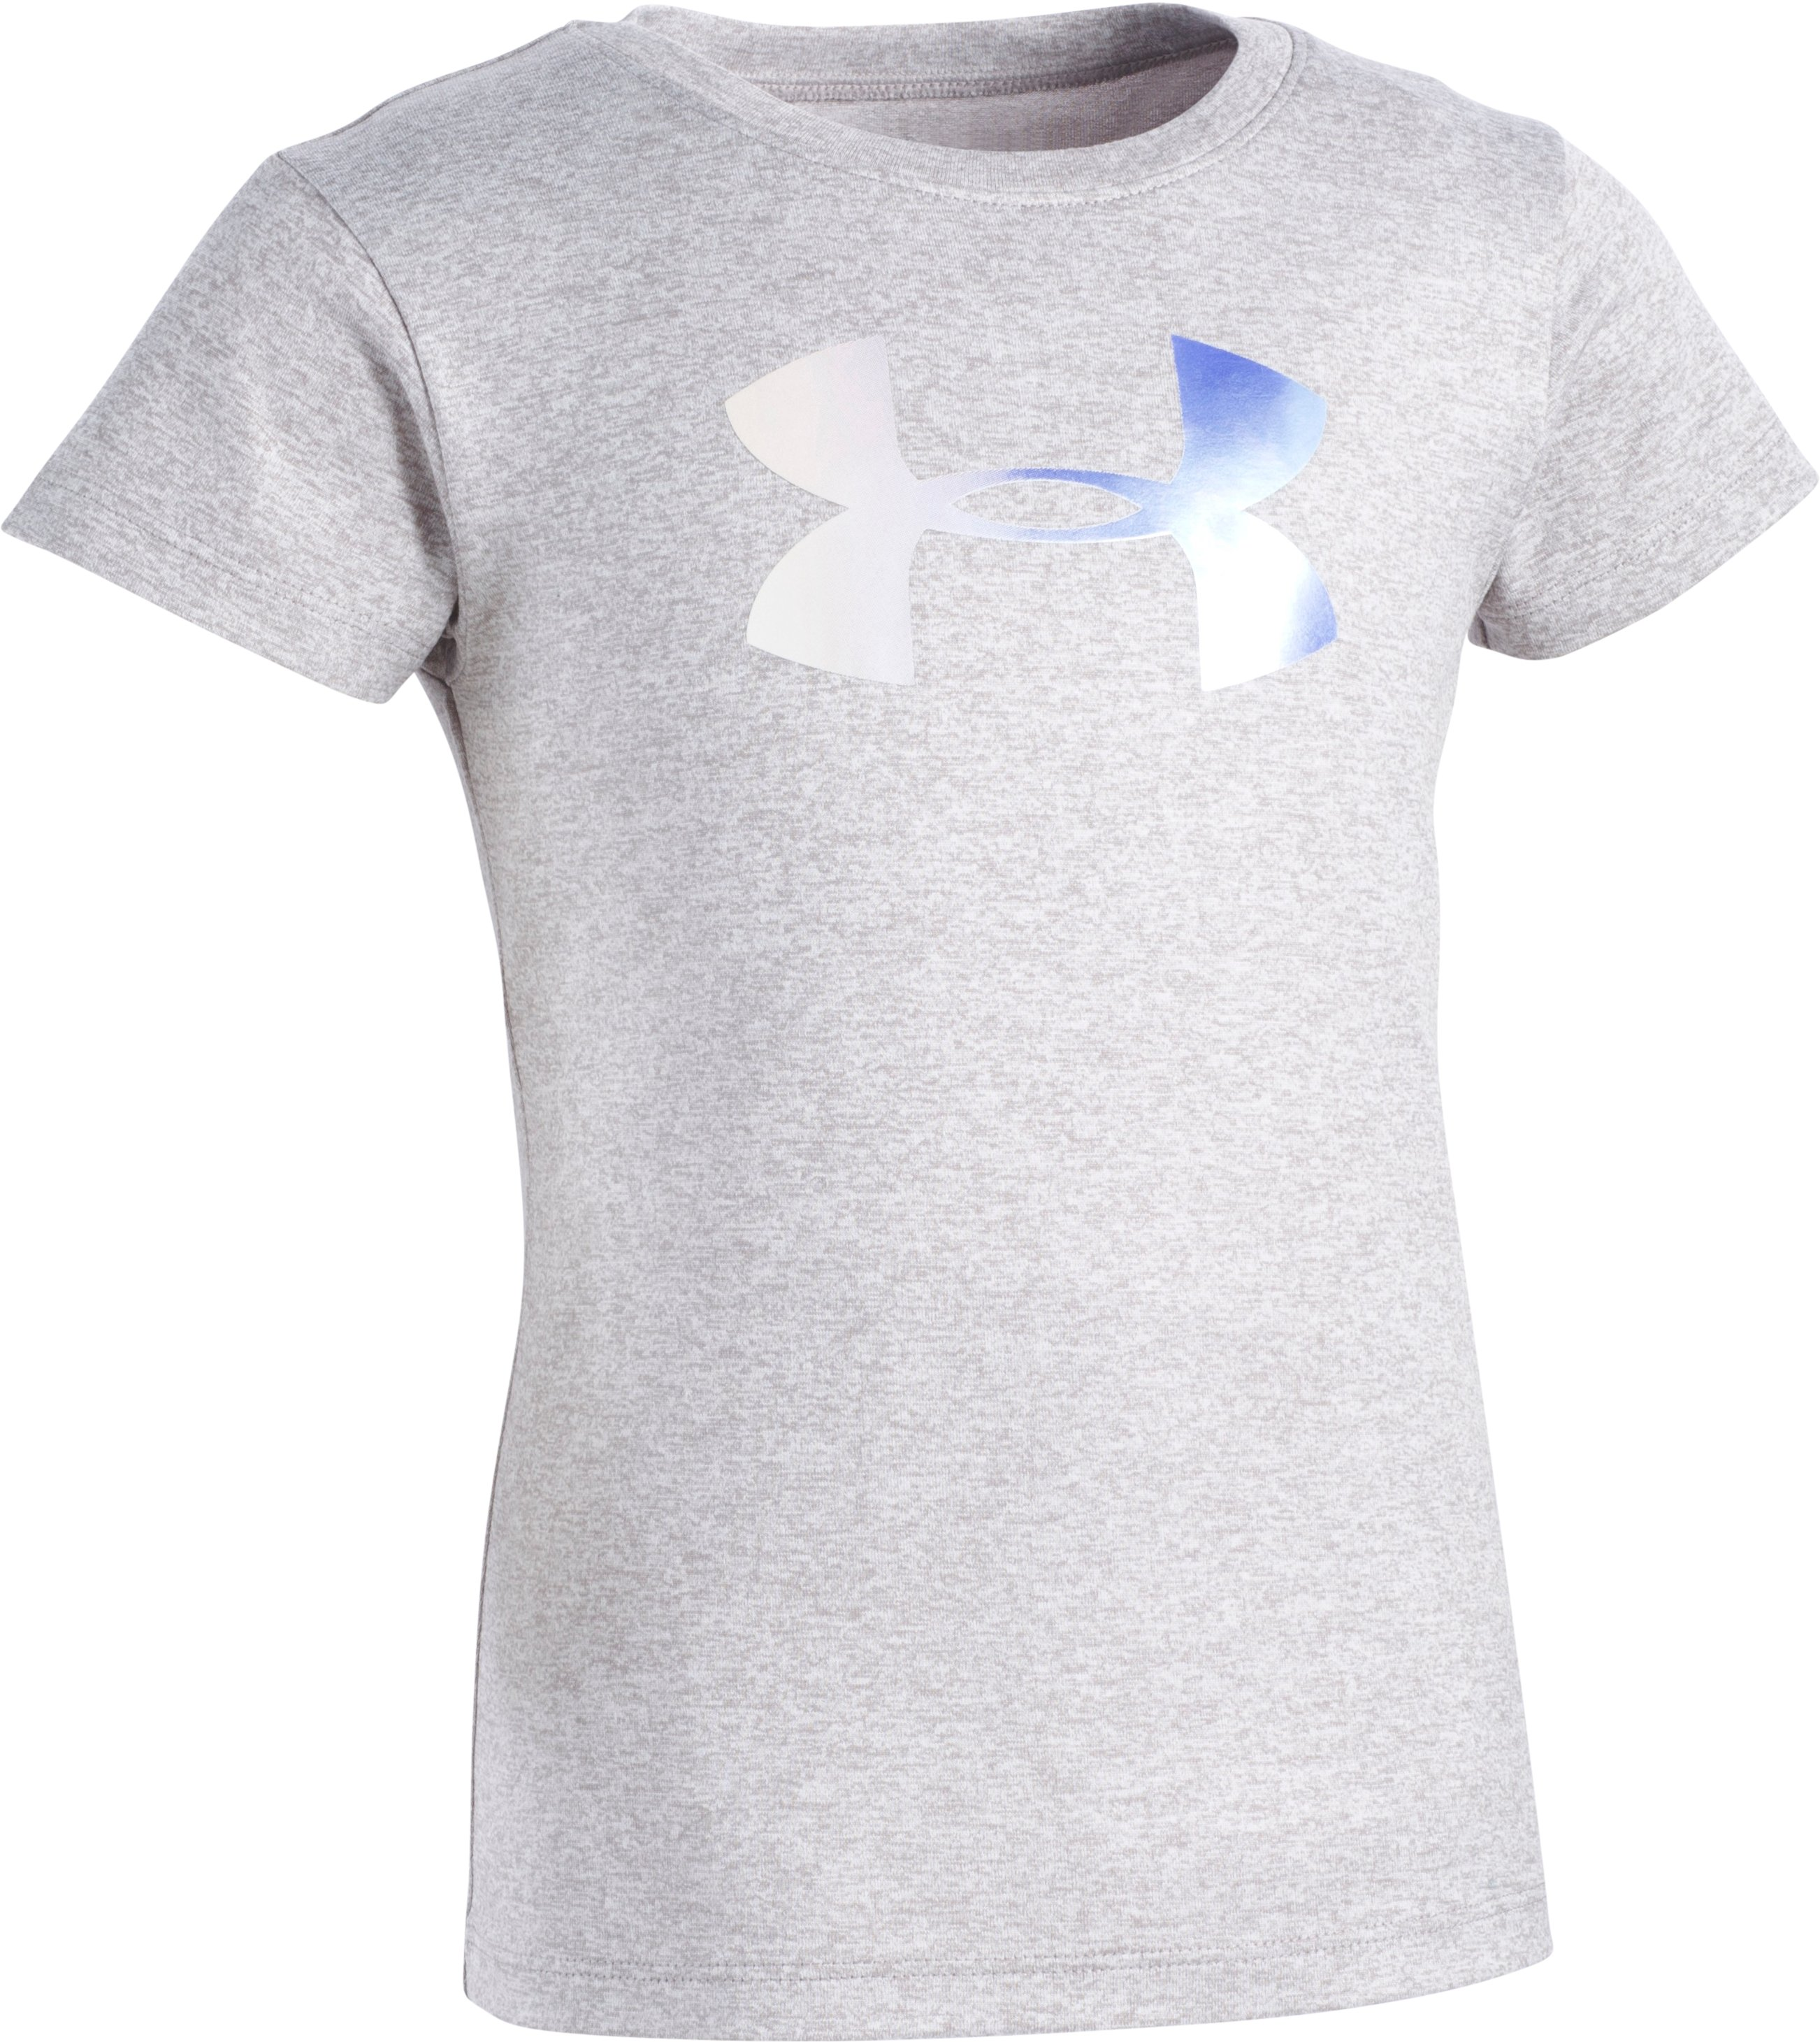 Girls' Pre-School UA Foil Big Logo Short Sleeve T-Shirt, STEEL MEDIUM HEATHER, Laydown